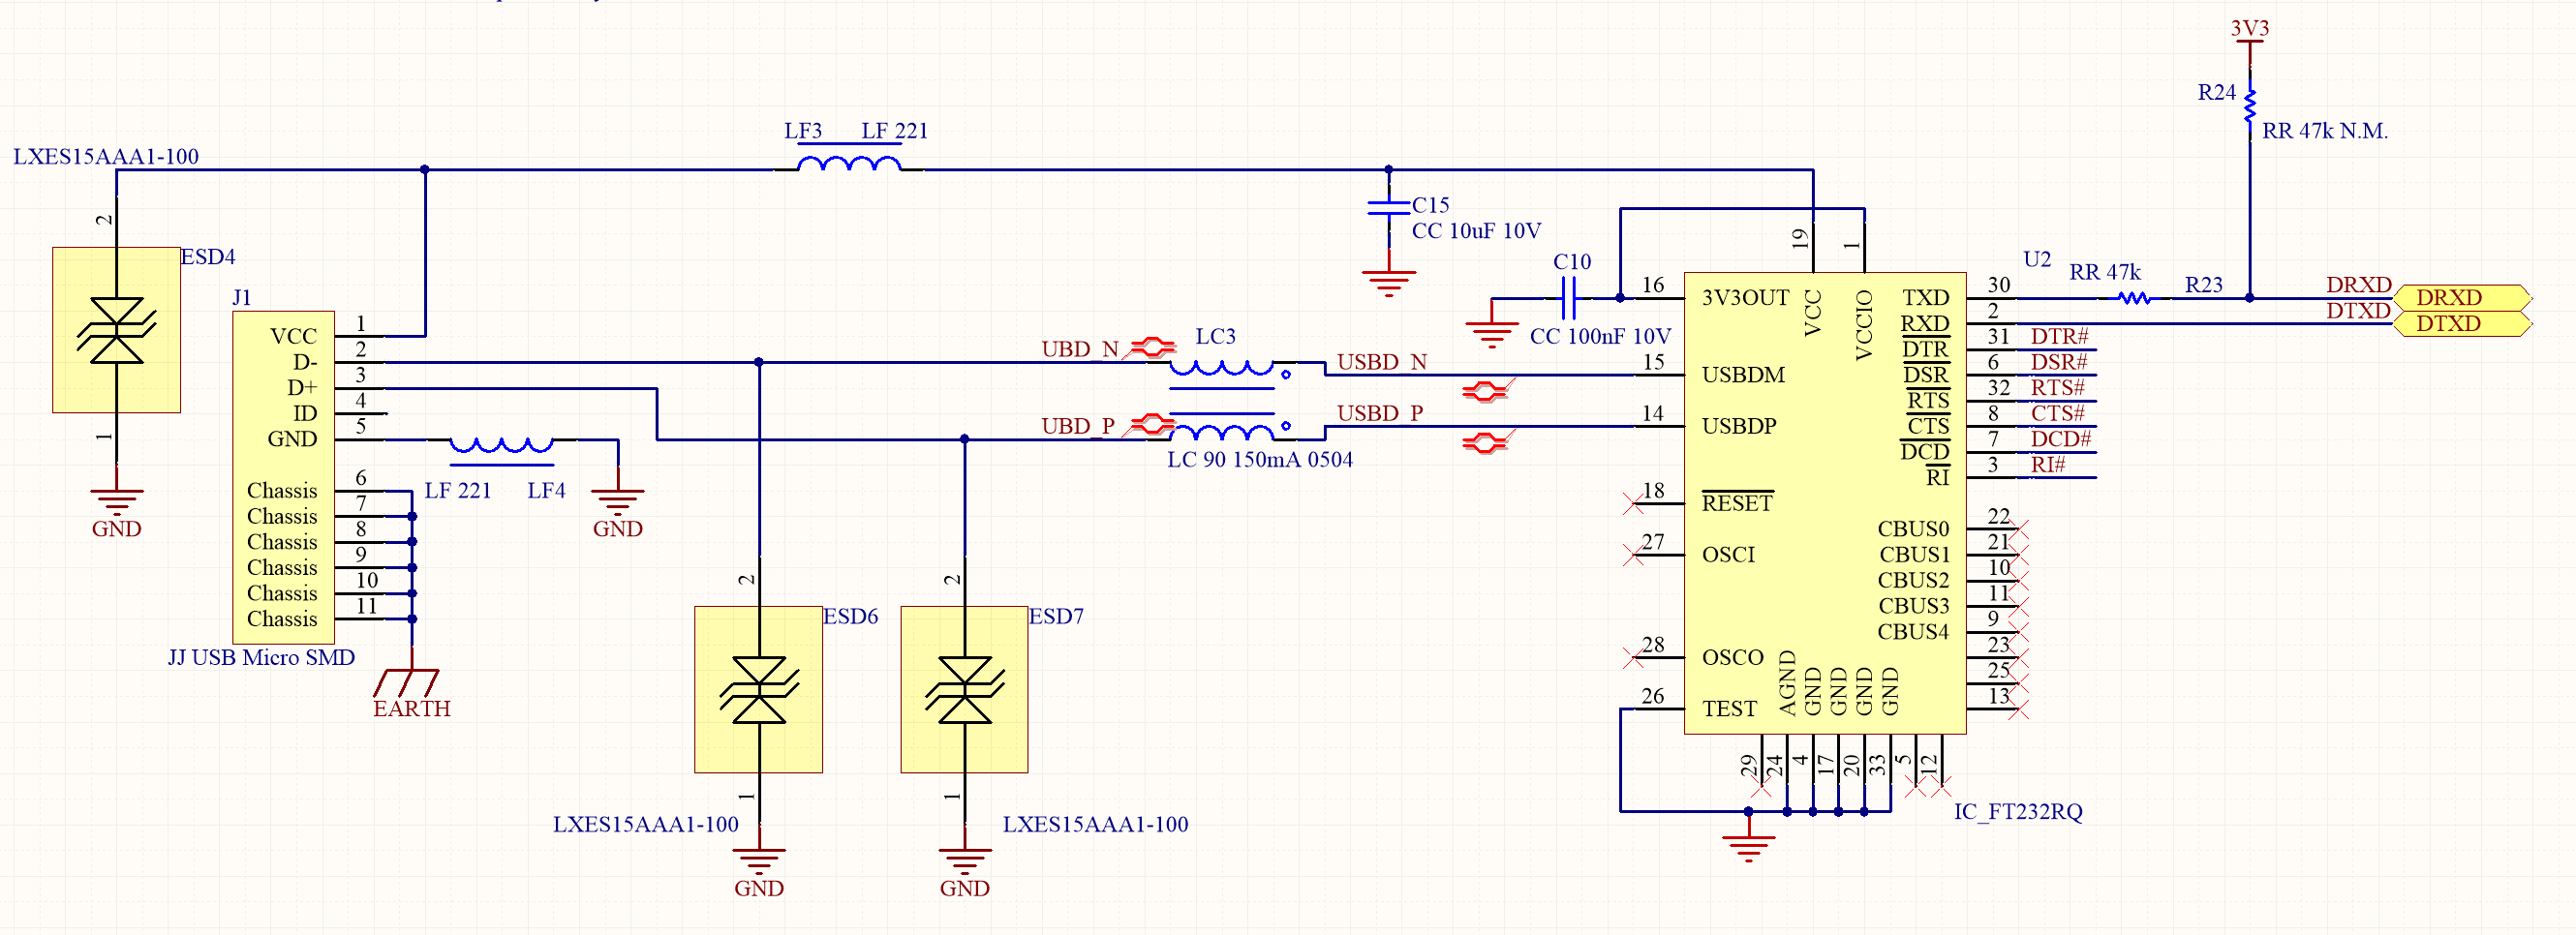 How to design the USB circuitry Usb Connection Wiring Diagram Scheme on soldering iron wiring diagram, software wiring diagram, usb output diagram, usb to serial wiring-diagram, usb otg diagram, usb to rj45 wiring-diagram, serial port wiring diagram, usb cable wiring, camera wiring diagram, usb network connection diagram, usb to usb wiring-diagram, power wiring diagram, sata to usb diagram, usb connector schematic, battery wiring diagram, wifi wiring diagram, usb connector wiring, ethernet port wiring diagram, dimensions wiring diagram,